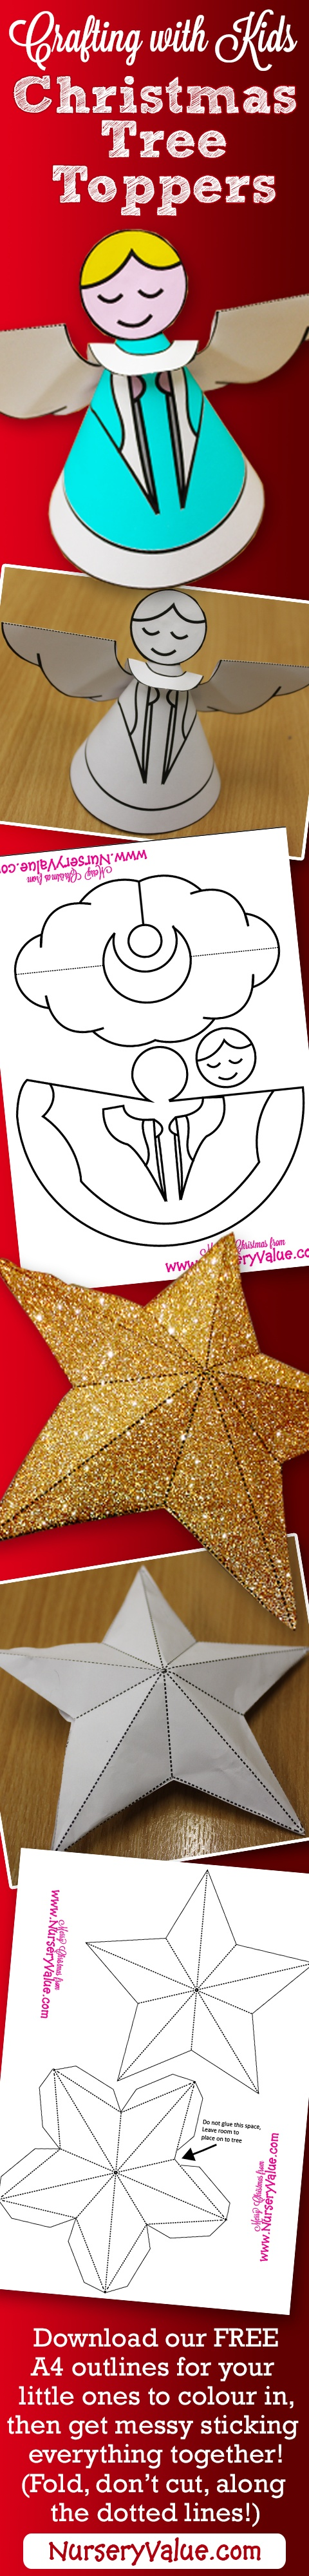 Crafting with Kids - Christmas Tree Angel and Star. Download our FREE A4 outlines for your little ones to colour in, then get messy sticking everything together!